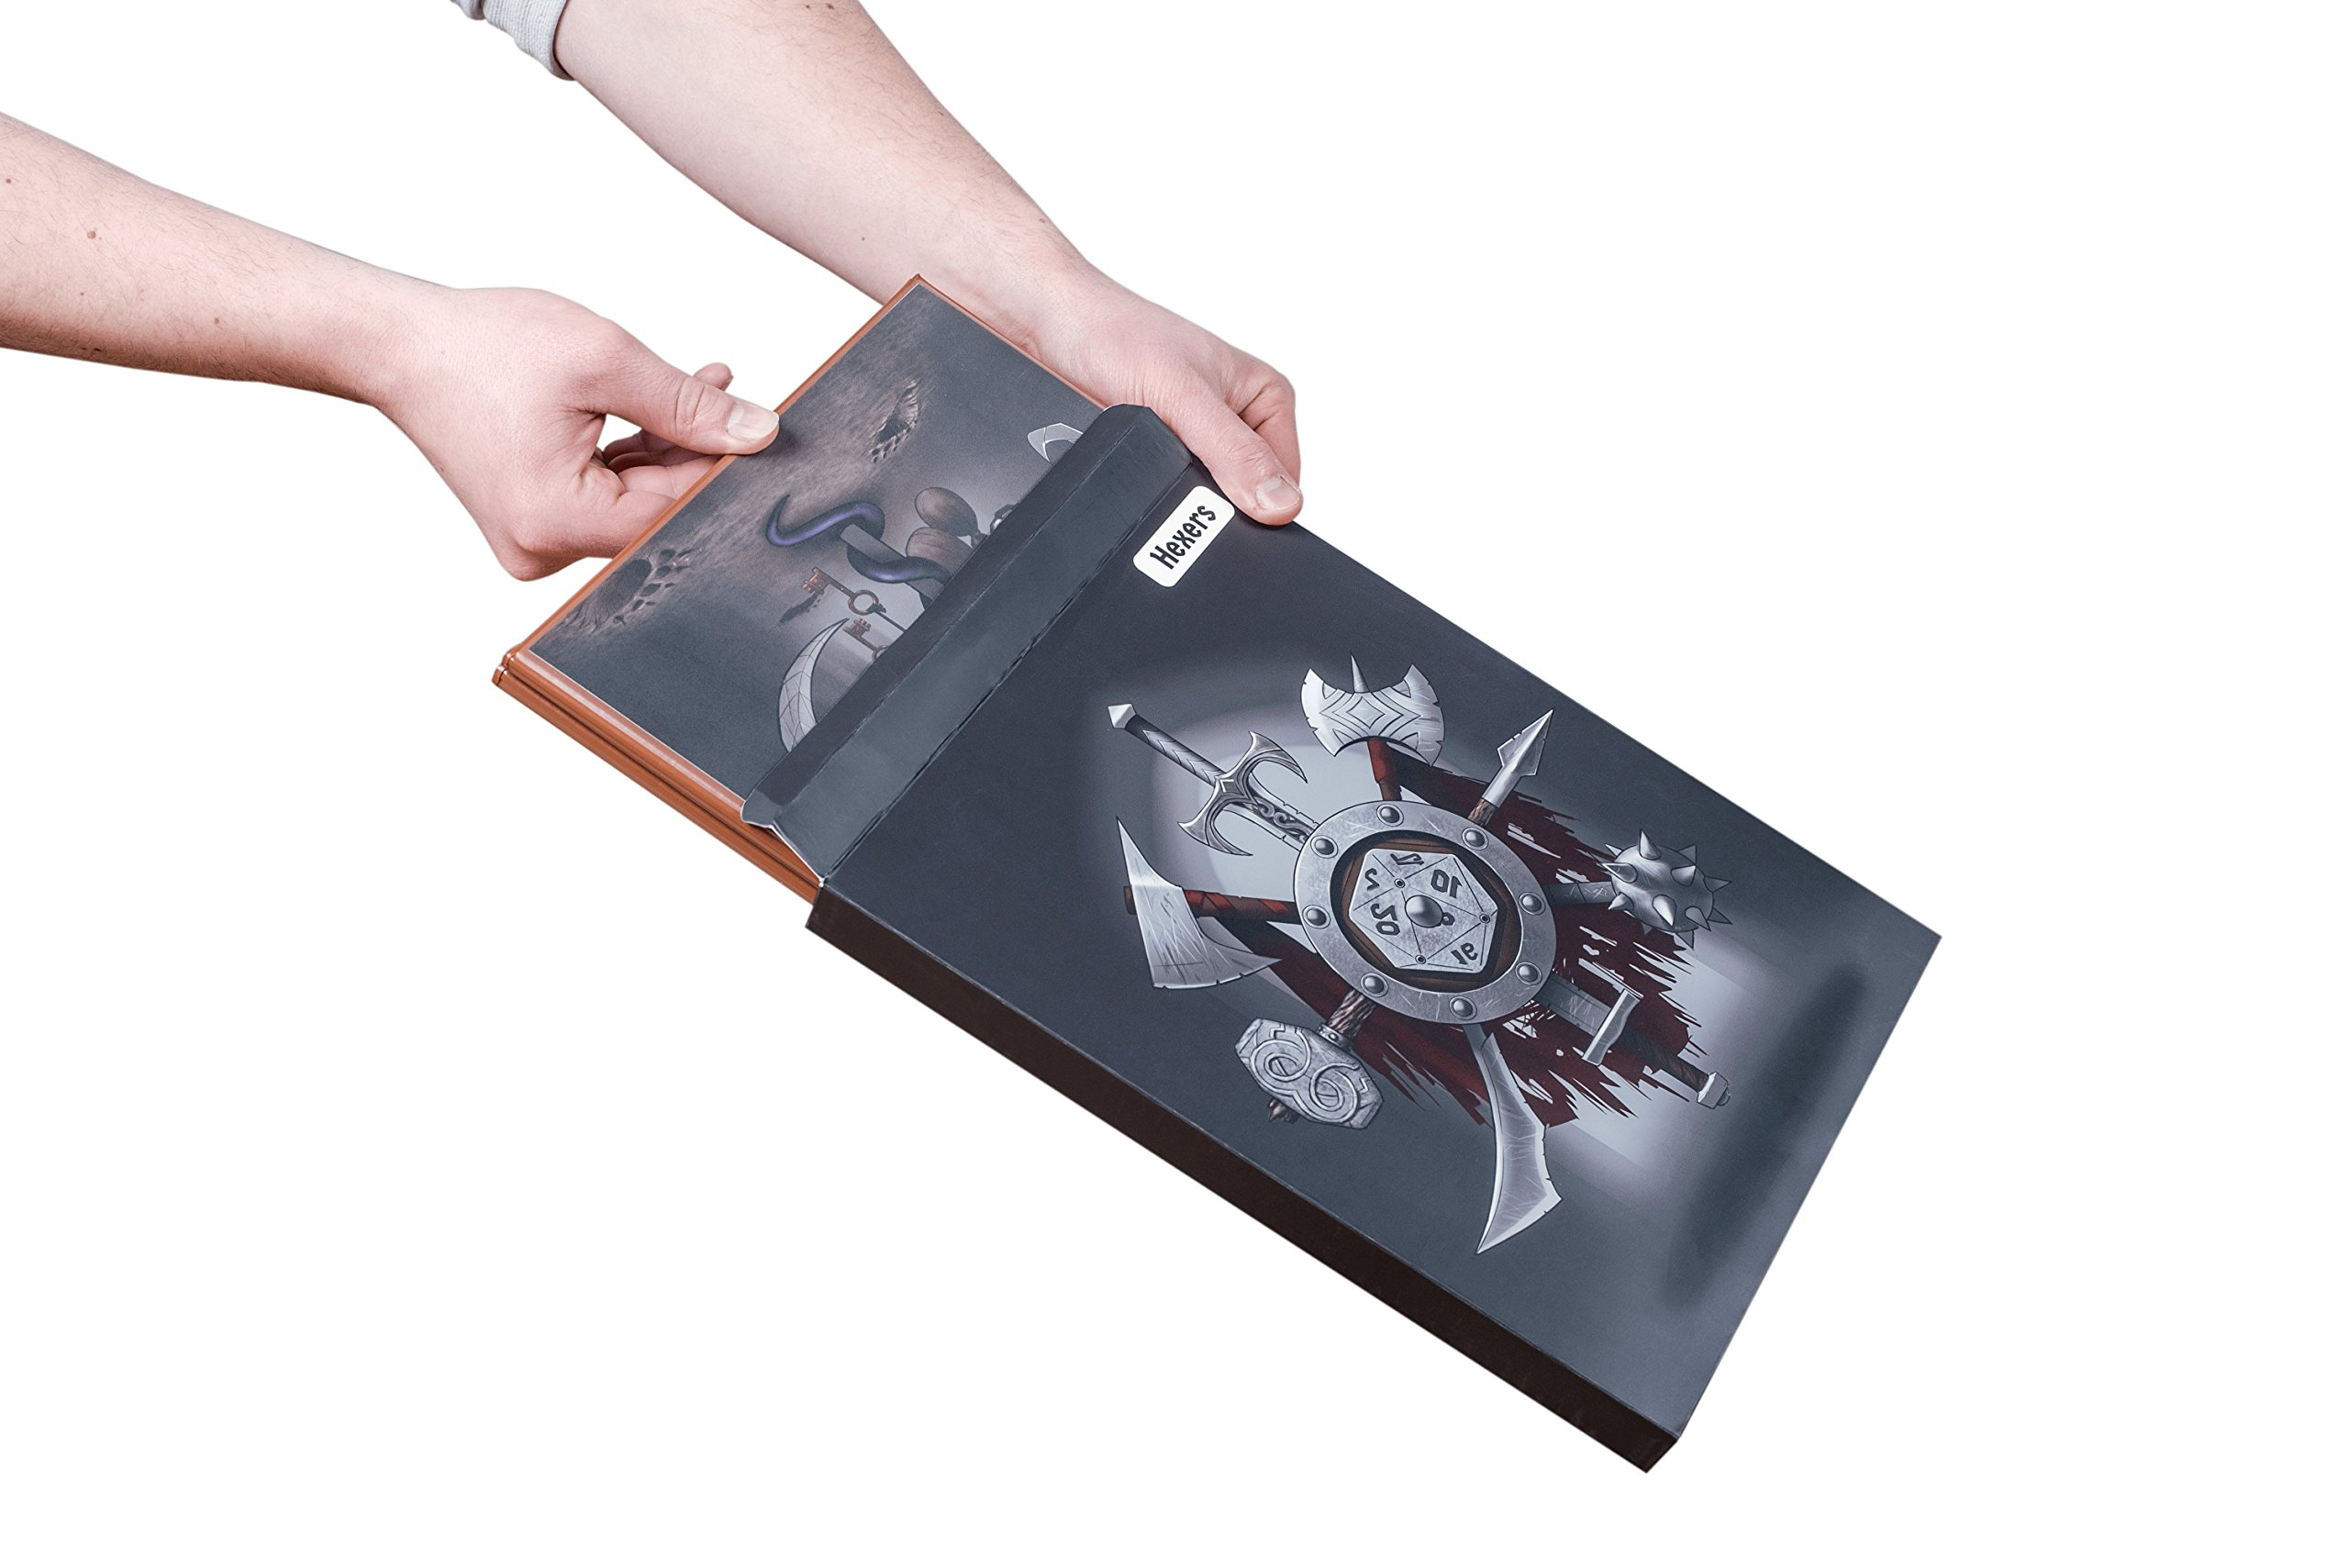 Hexers Game Master Screen - Dungeons and Dragons D&D DND DM Pathfinder RPG Role Playing Compatible - 4 Customizable Panels - Inserts Included That Slide into The Pouches - Dry Erase Tracker Sheet by Hexers (Image #6)